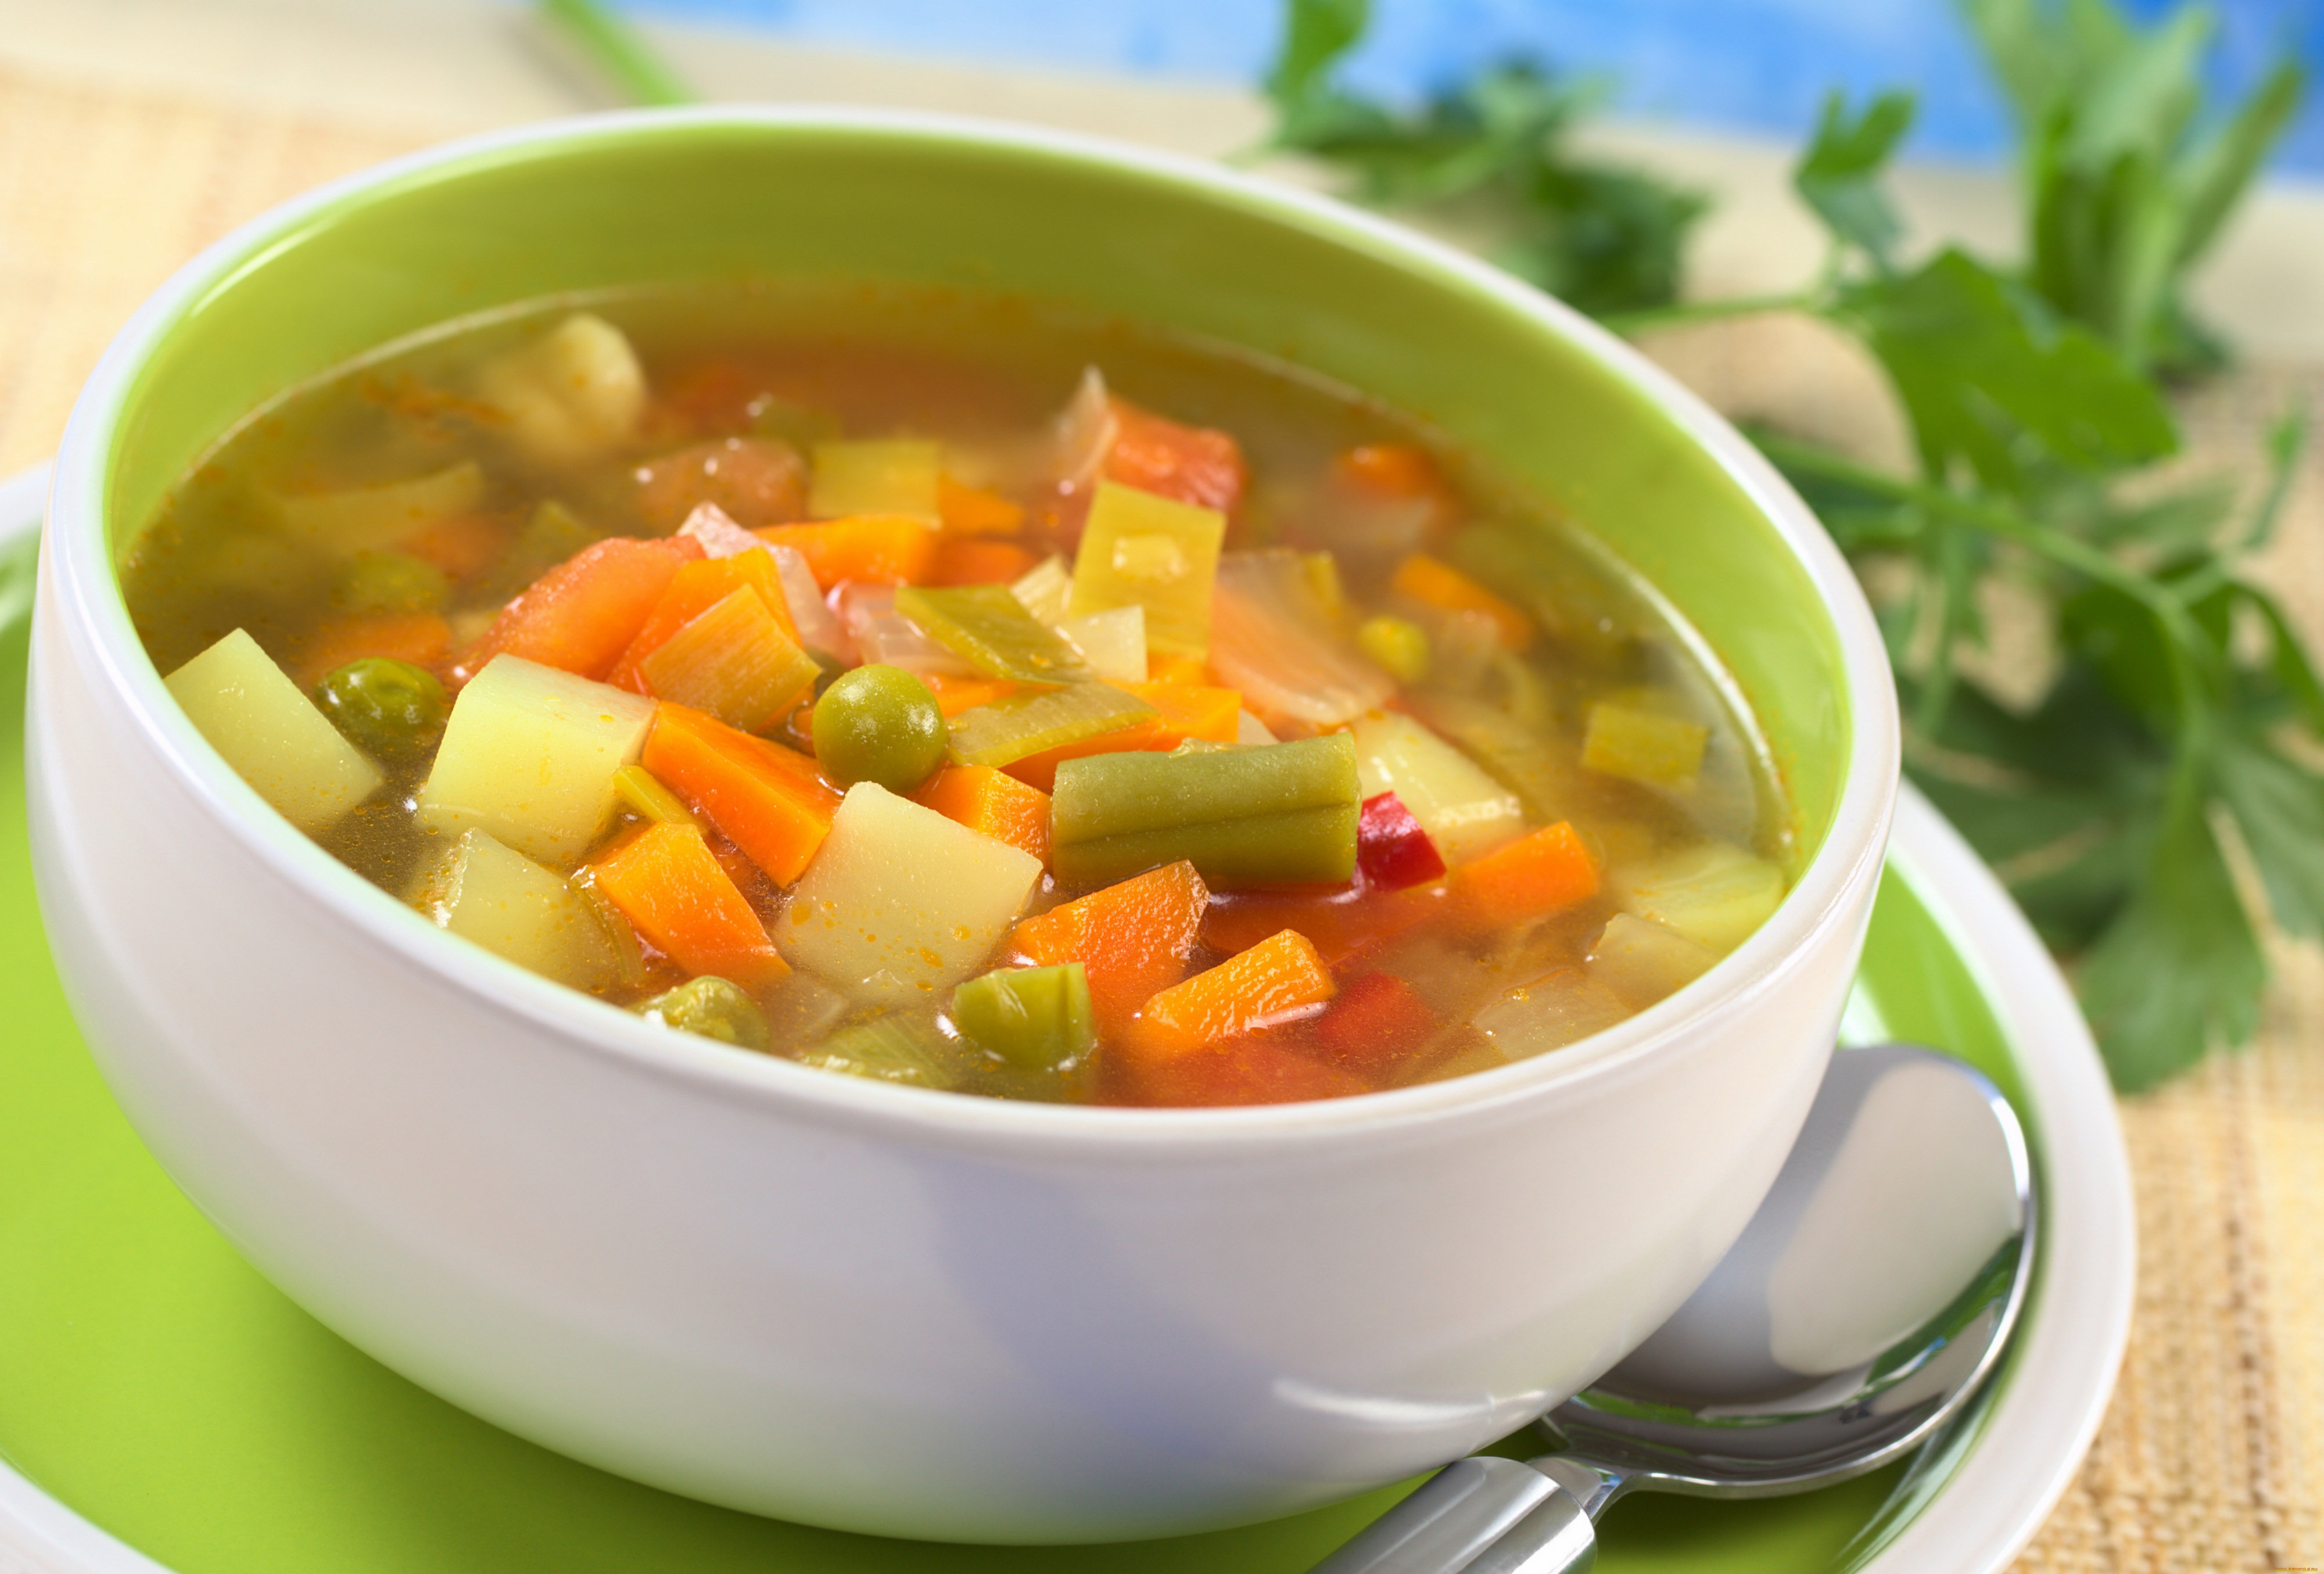 Soup Wallpapers and Background Images   stmednet 4000x2709